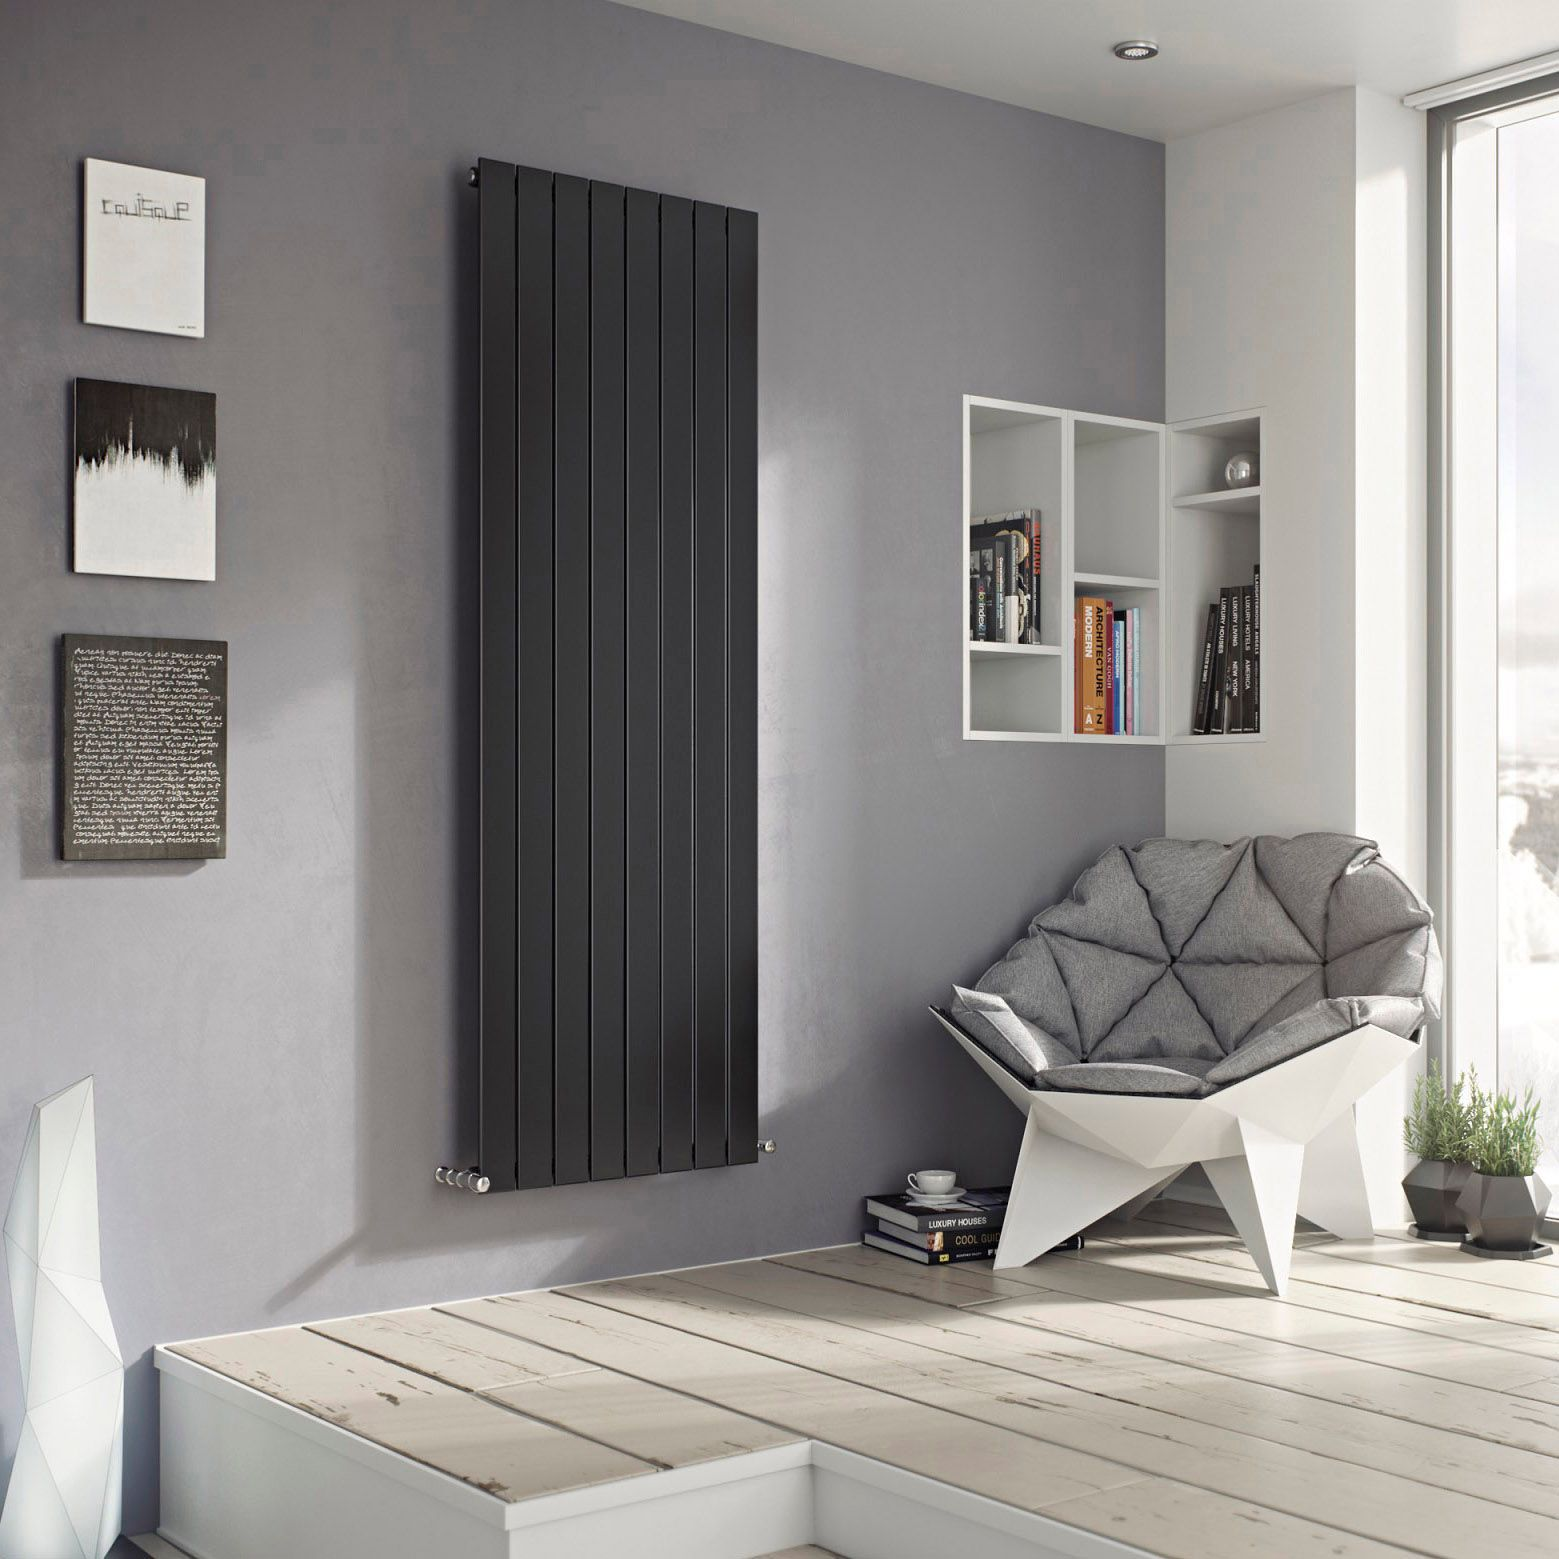 Ximax Vertirad Vertical/Horizontal Radiator Anthracite (H)900 mm